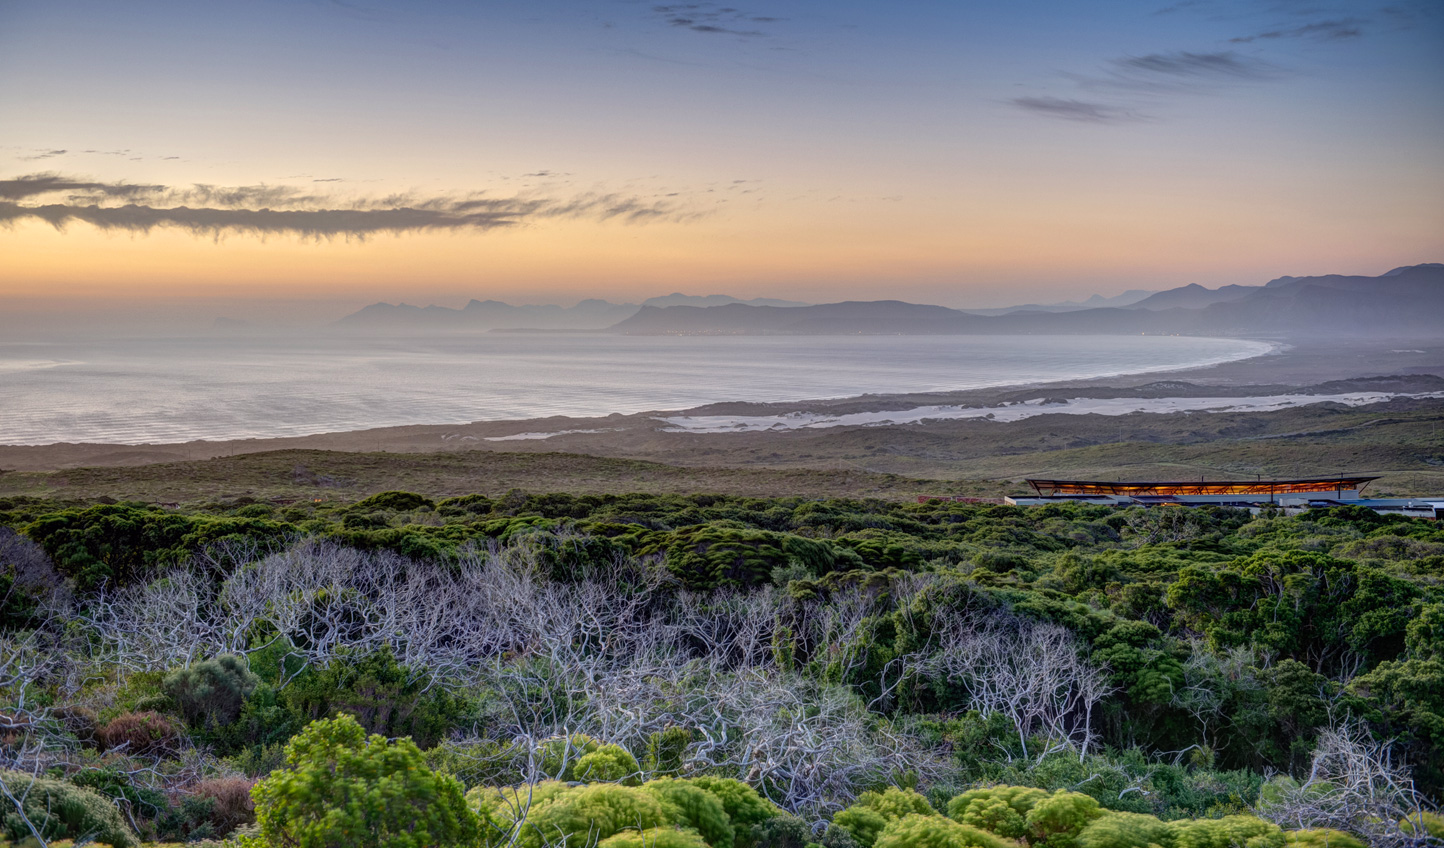 An escape to nature at Grootbos Private Reserve